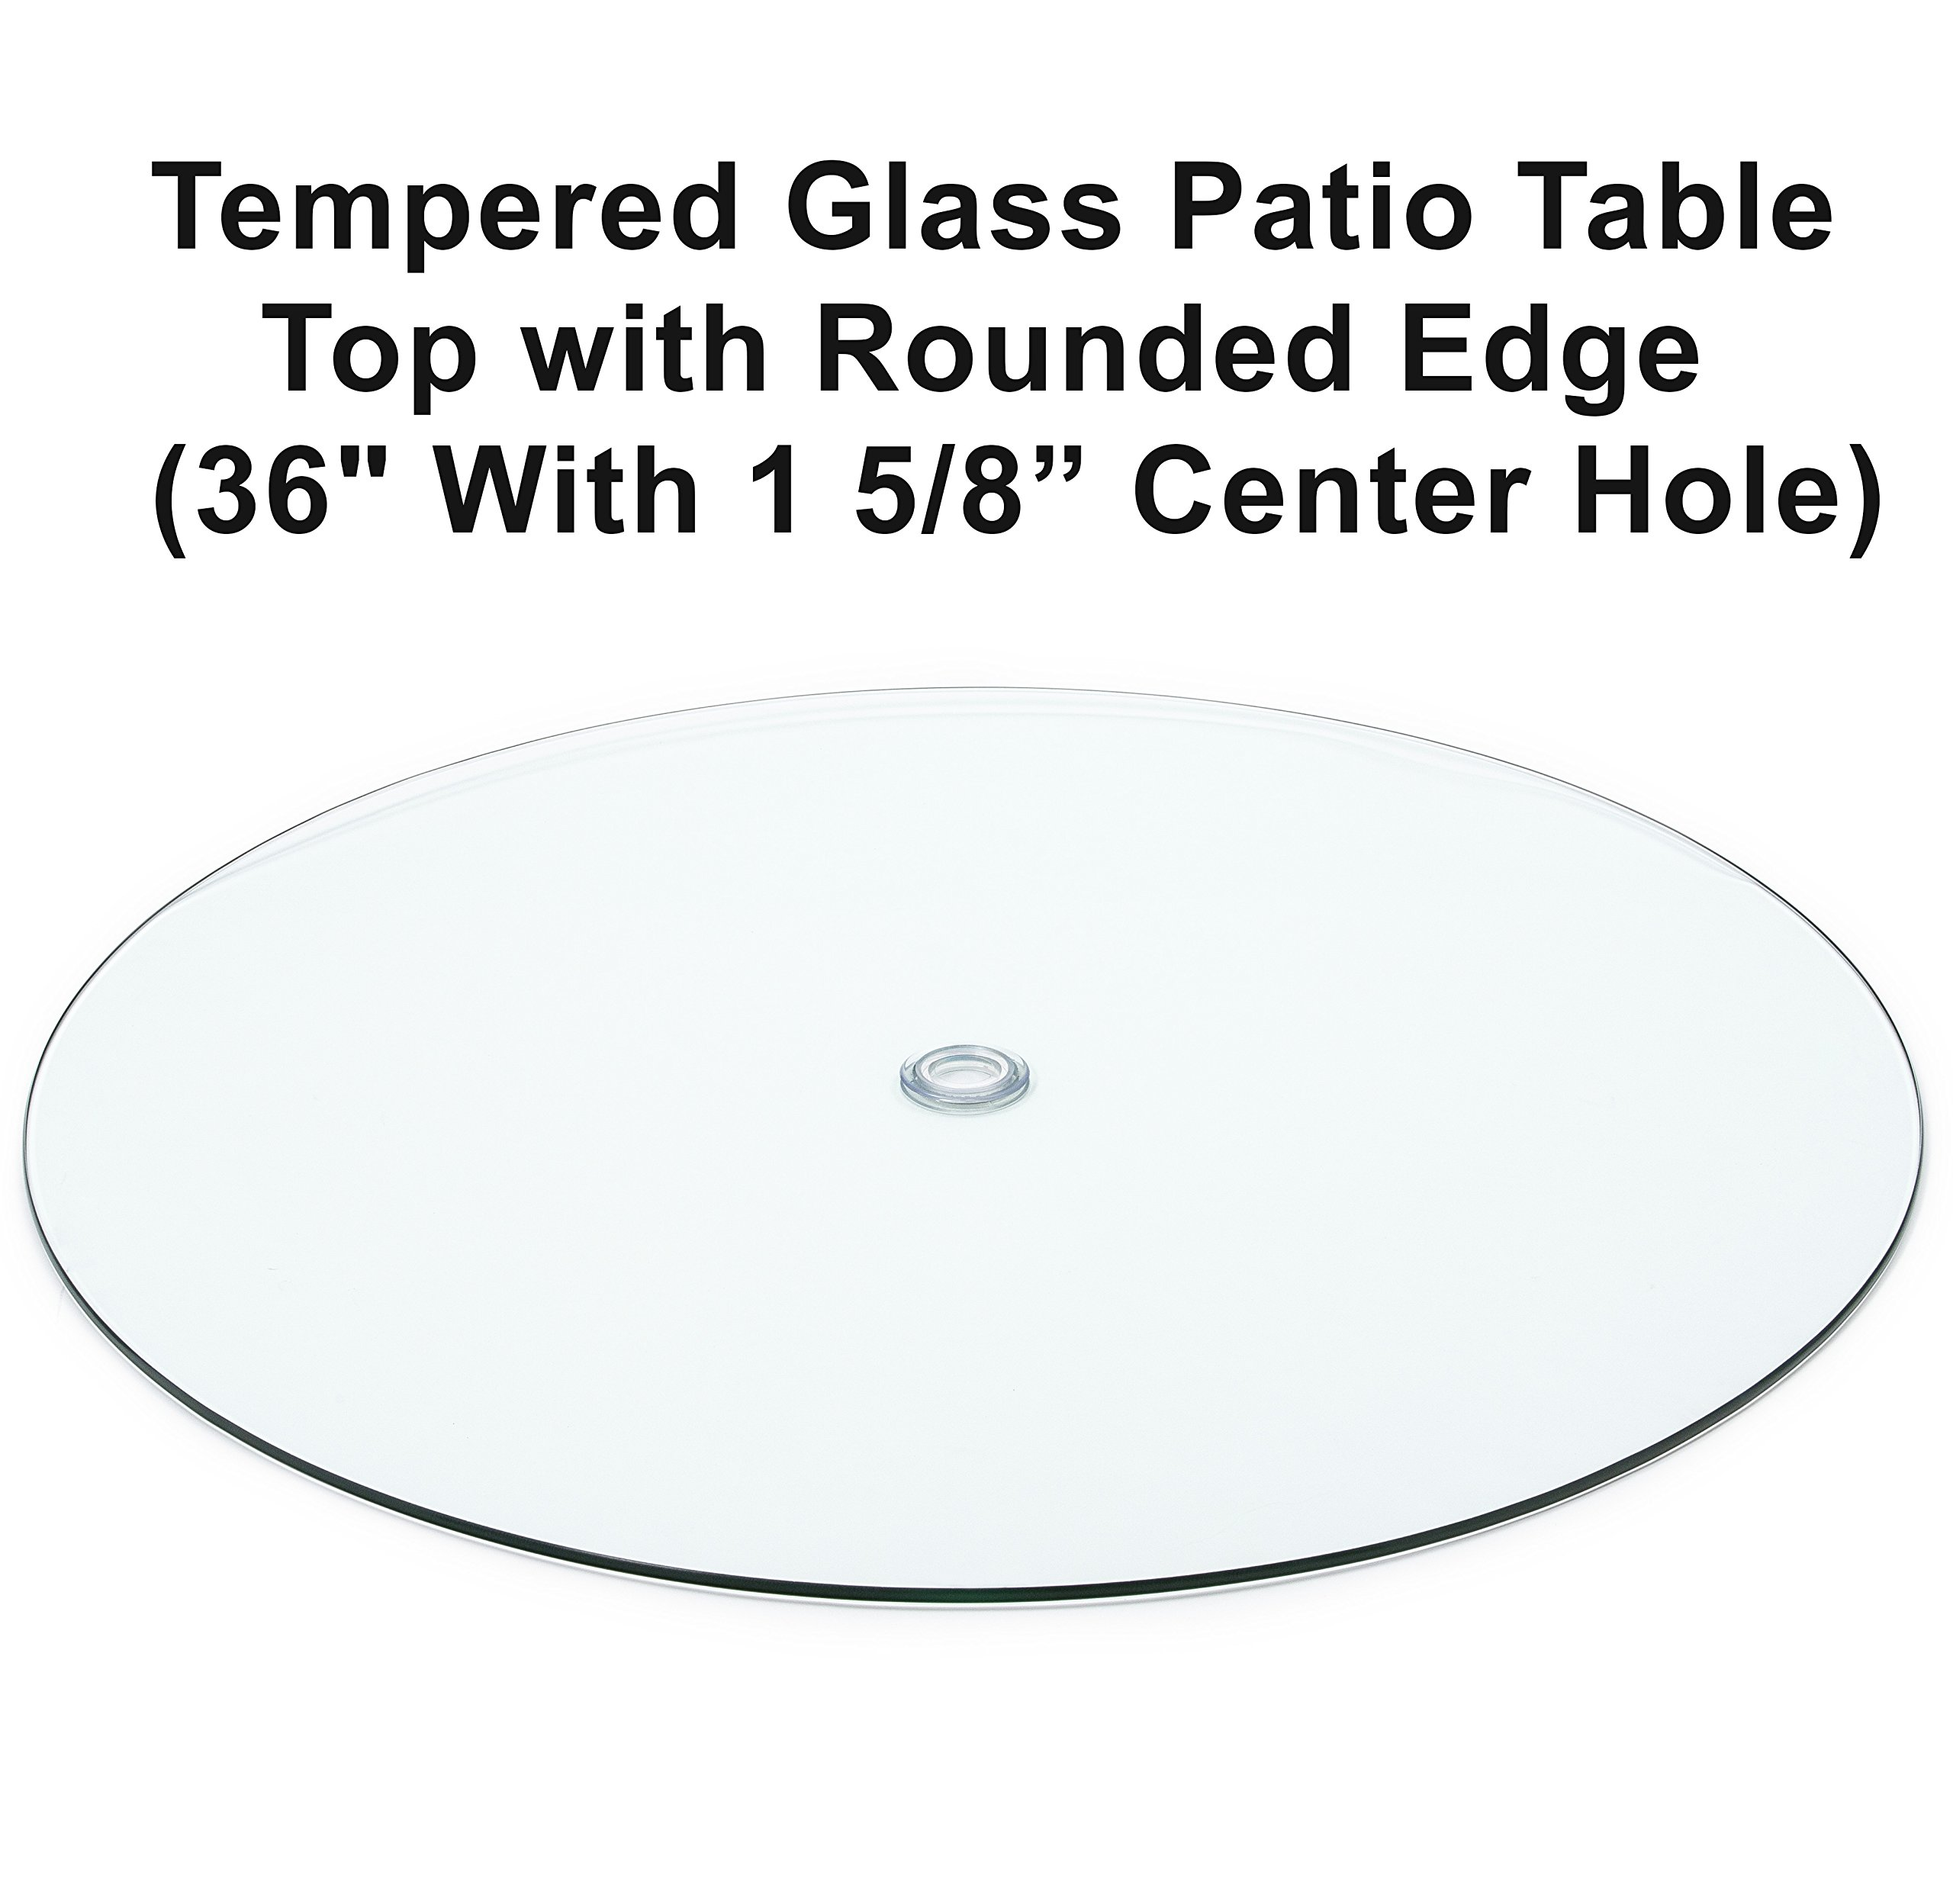 Audio Visual Direct Tempered Glass Patio Table Top With